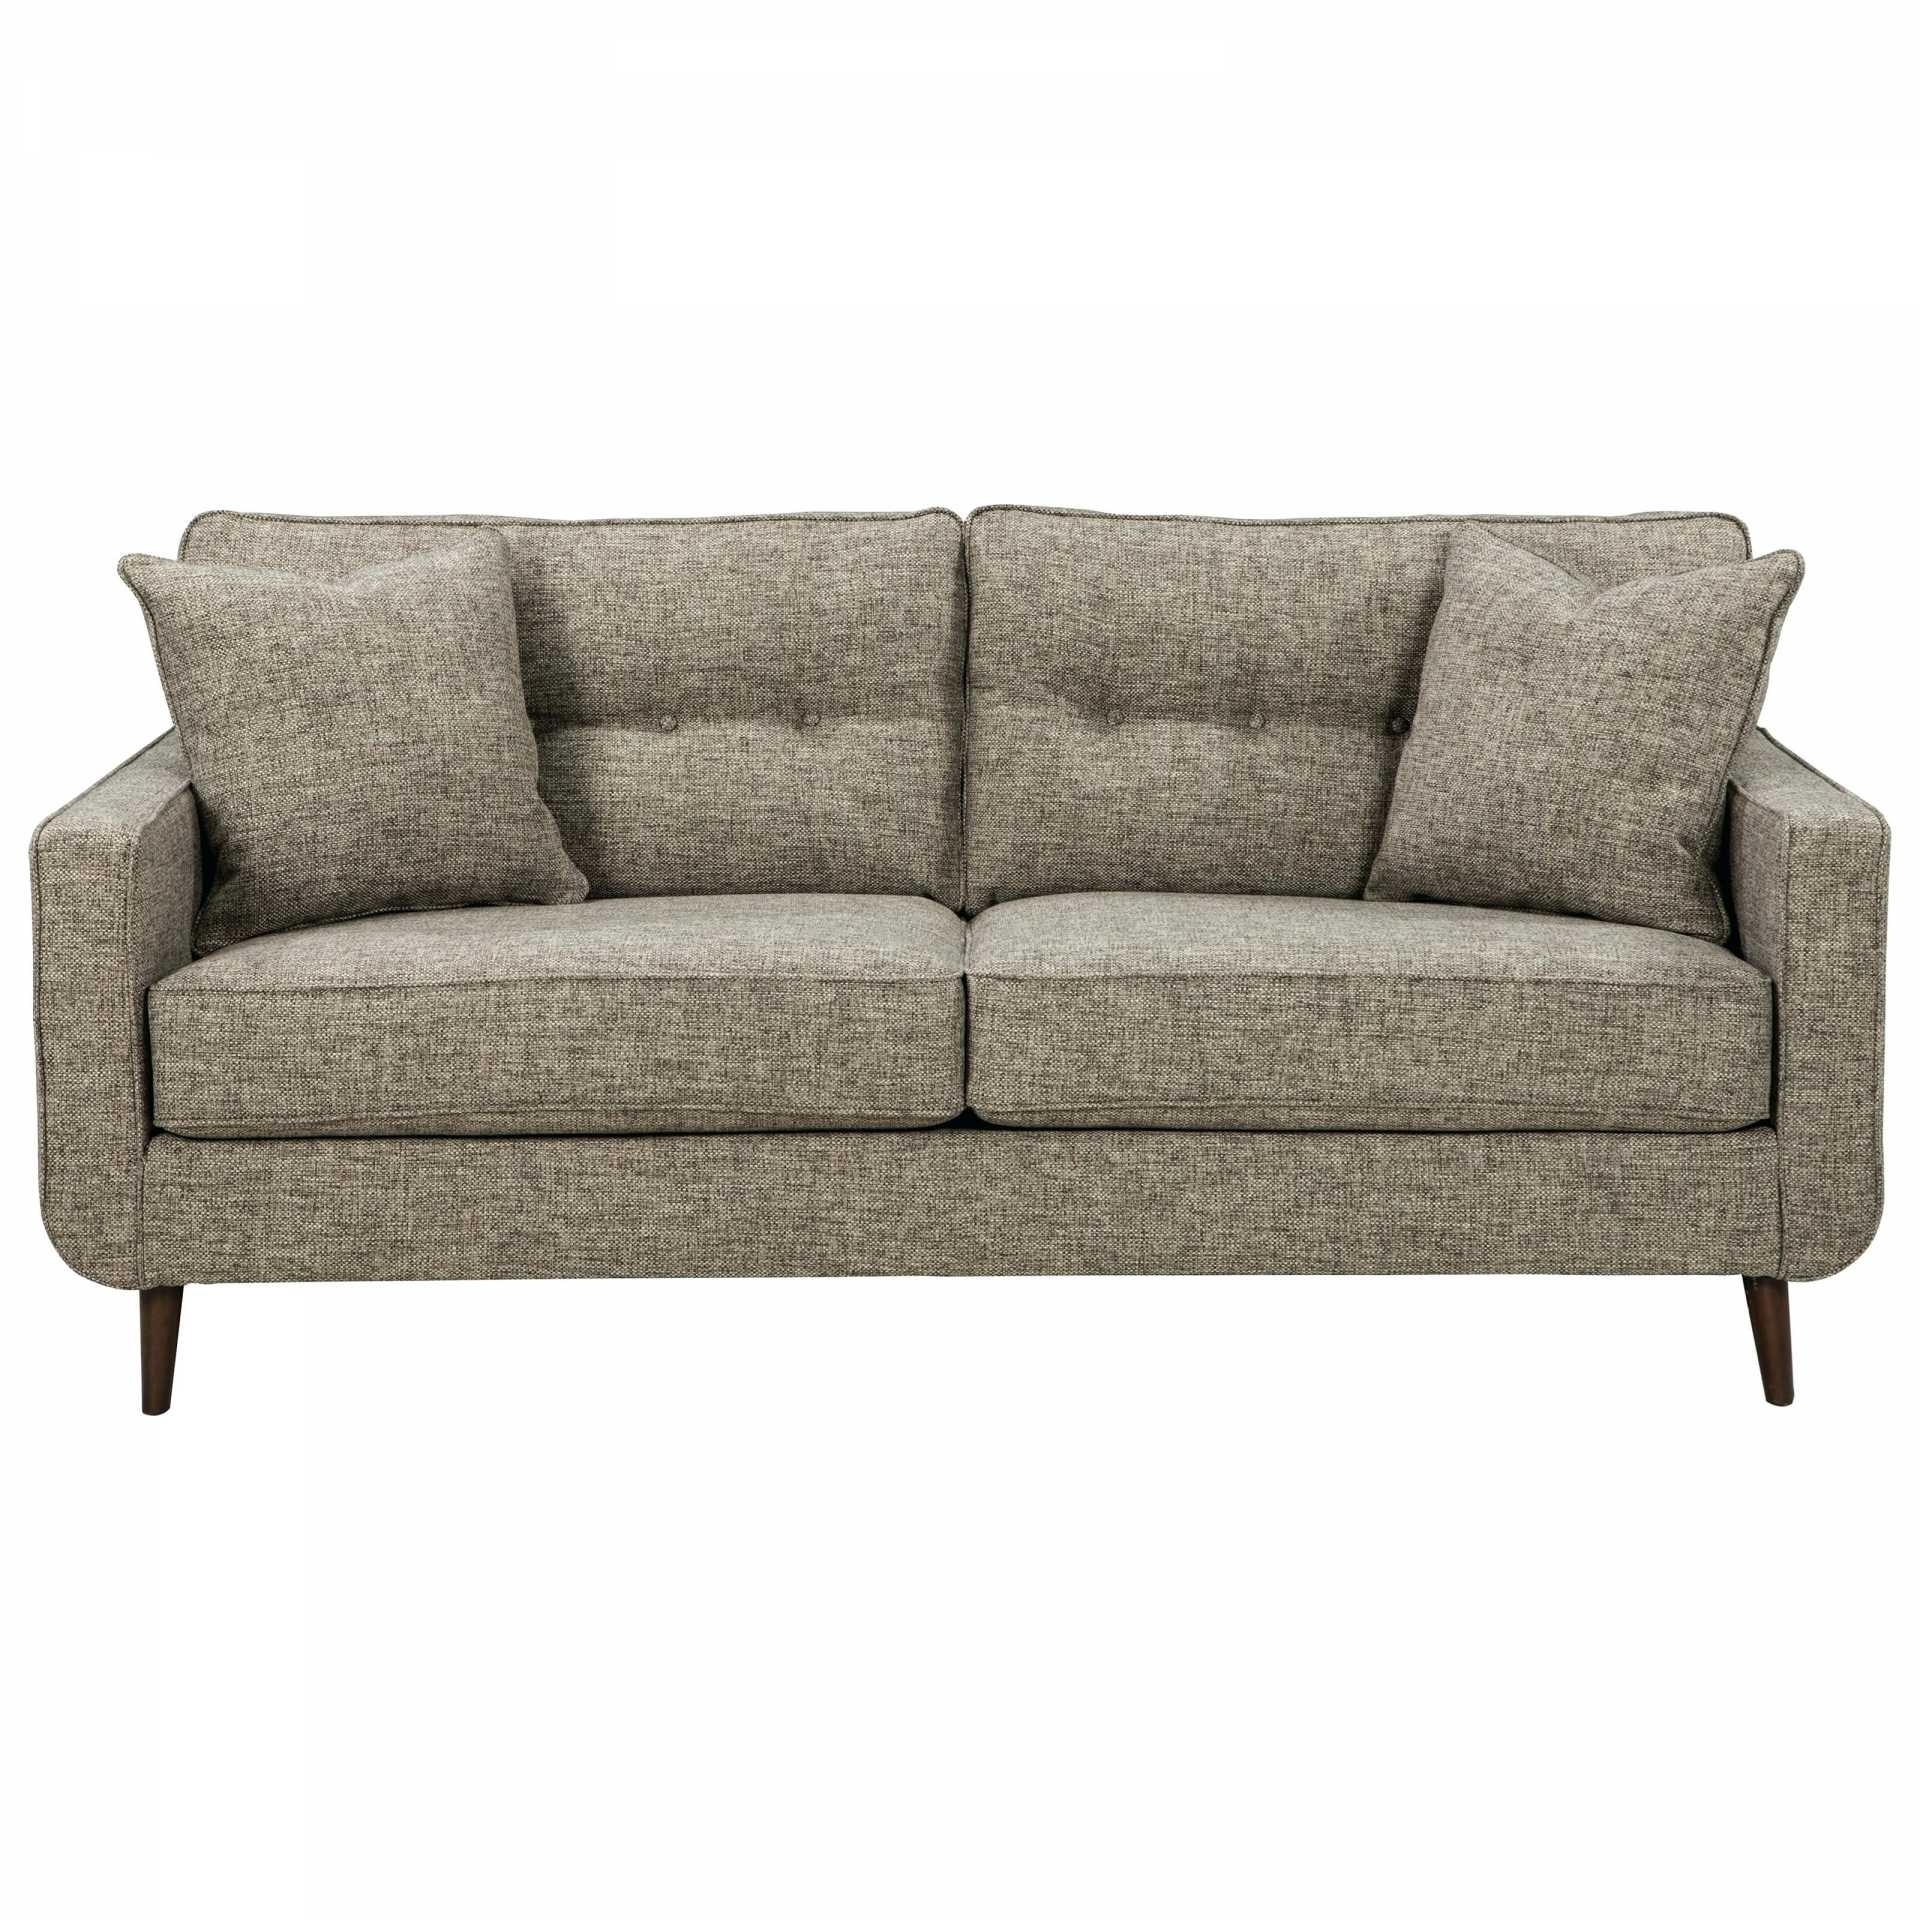 Fashionable Loveseat : Sectional Sofa: Sectional Sofas On Craigslist Augusta Regarding Sectional Sofas At Craigslist (View 5 of 20)